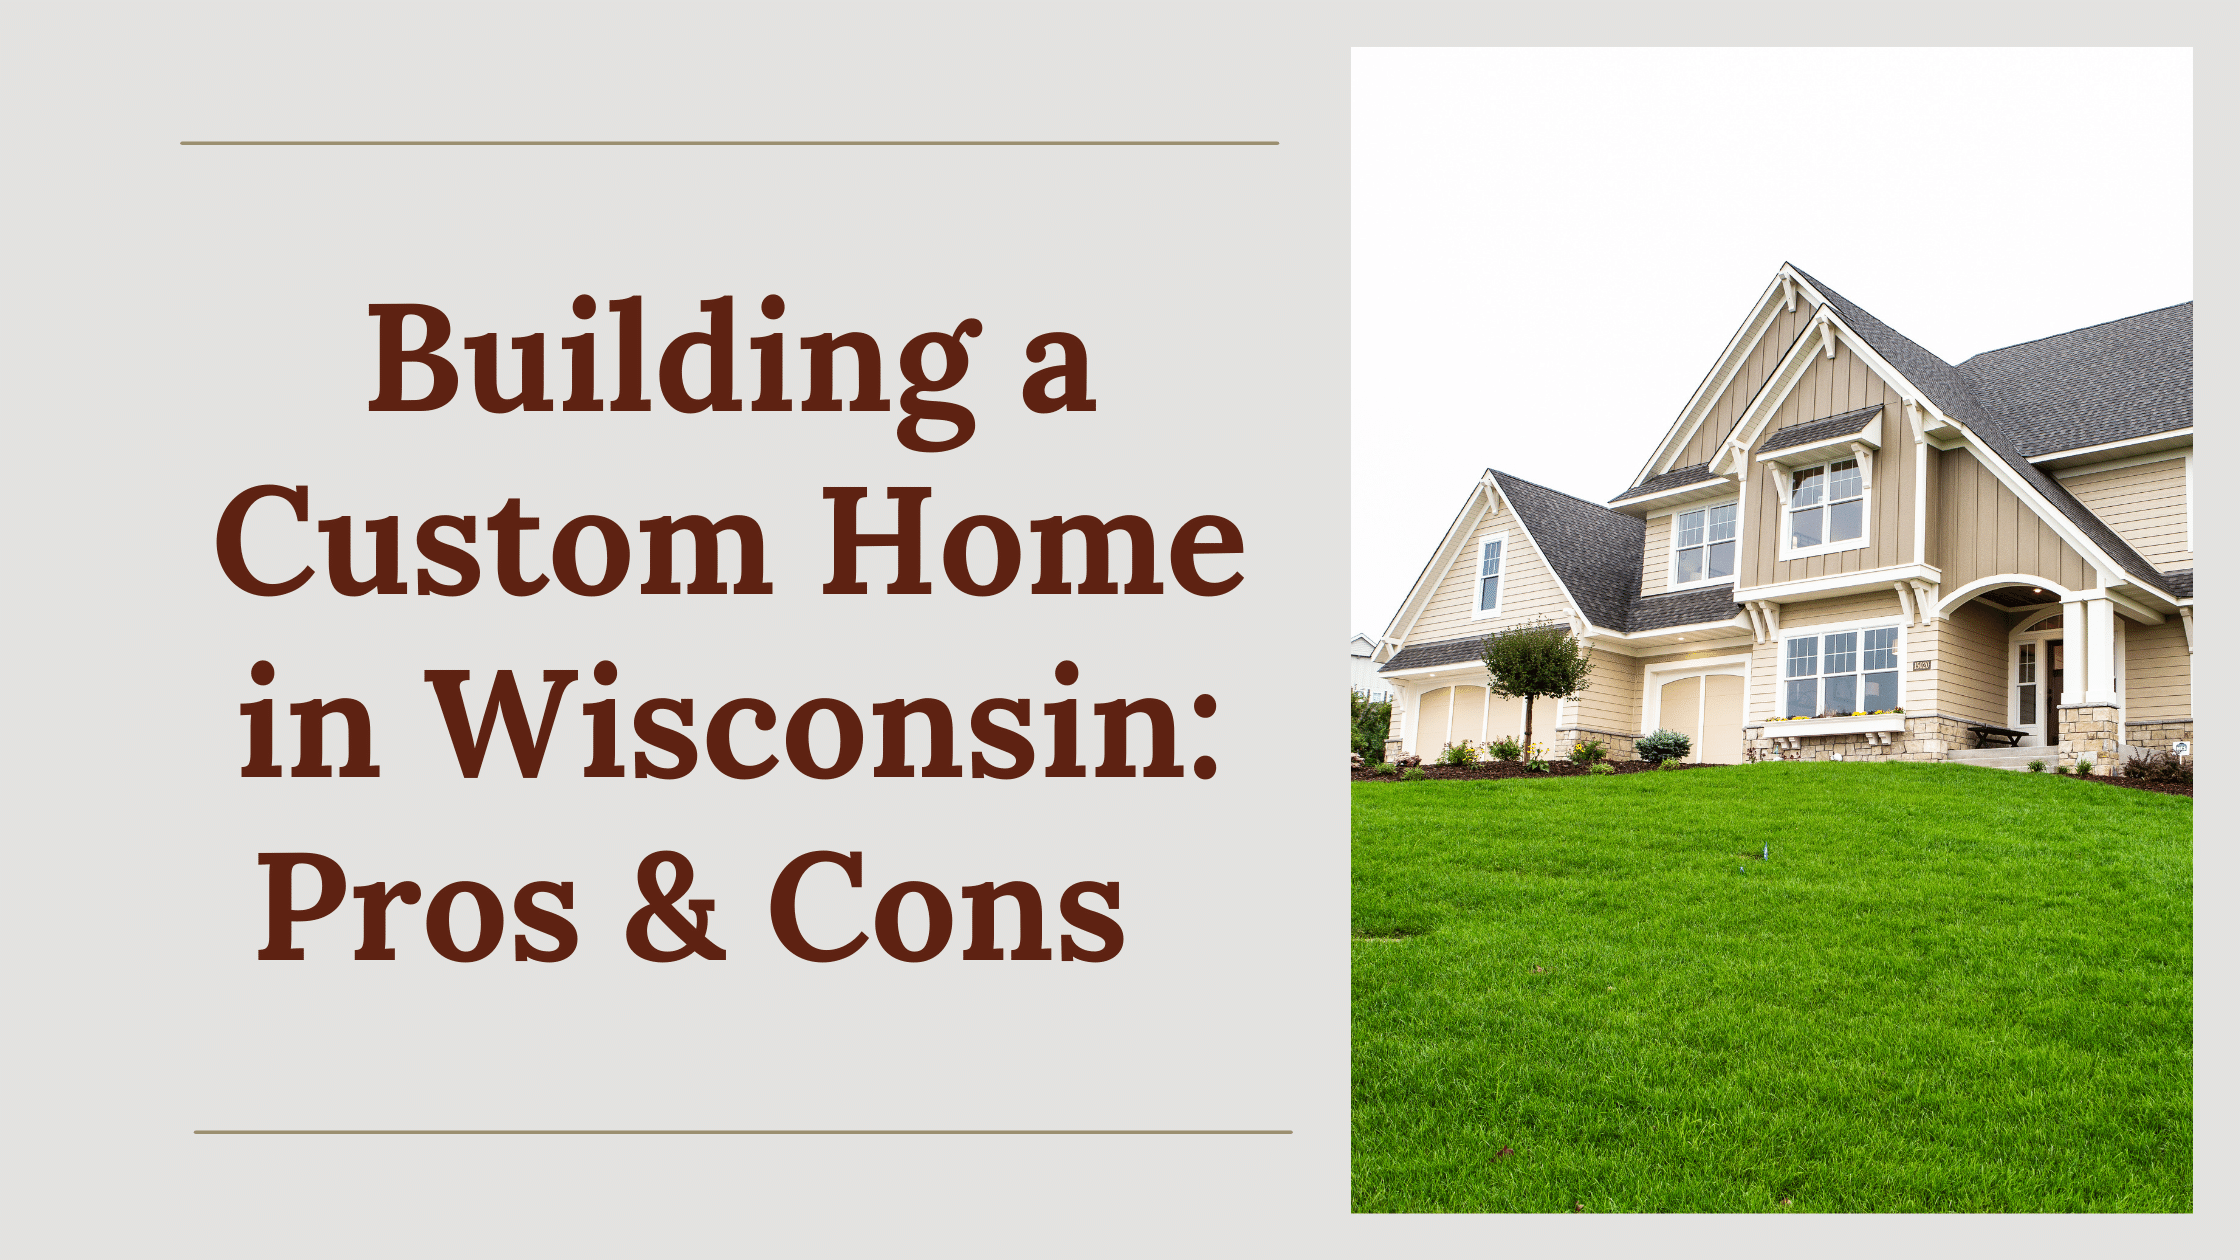 Building a Custom Home in Wisconsin: Pros & Cons